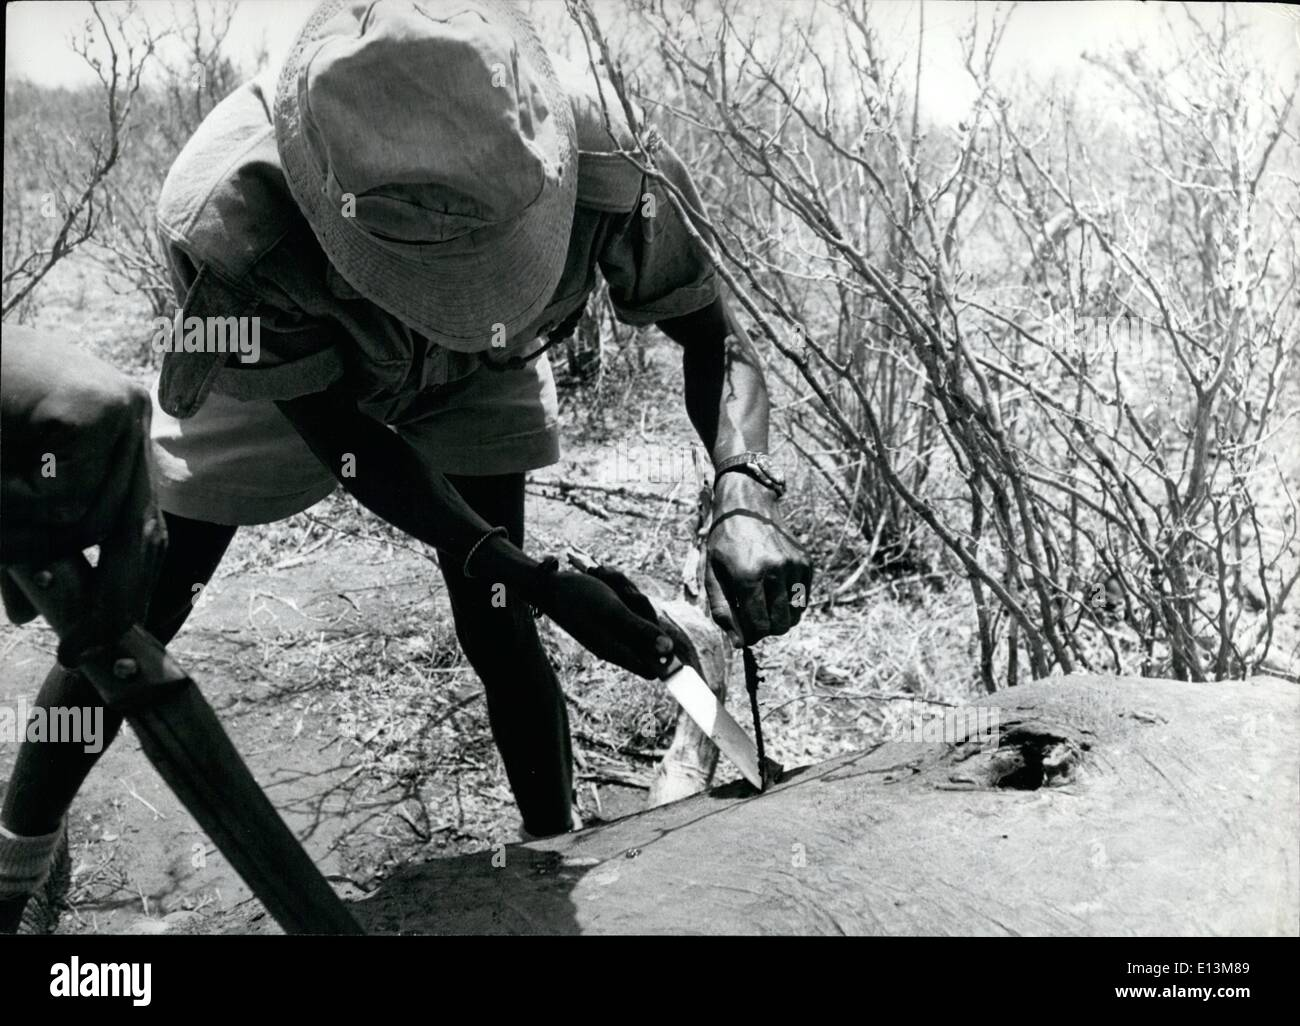 Mar. 02, 2012 - Govt. against poachers. Tsavo Natl. Pk. Kenya. A field force askari extracts the poisoned arrow that killed the elephant probably after days of agony. The dark mark at the right is the elephant's eye. - Stock Image